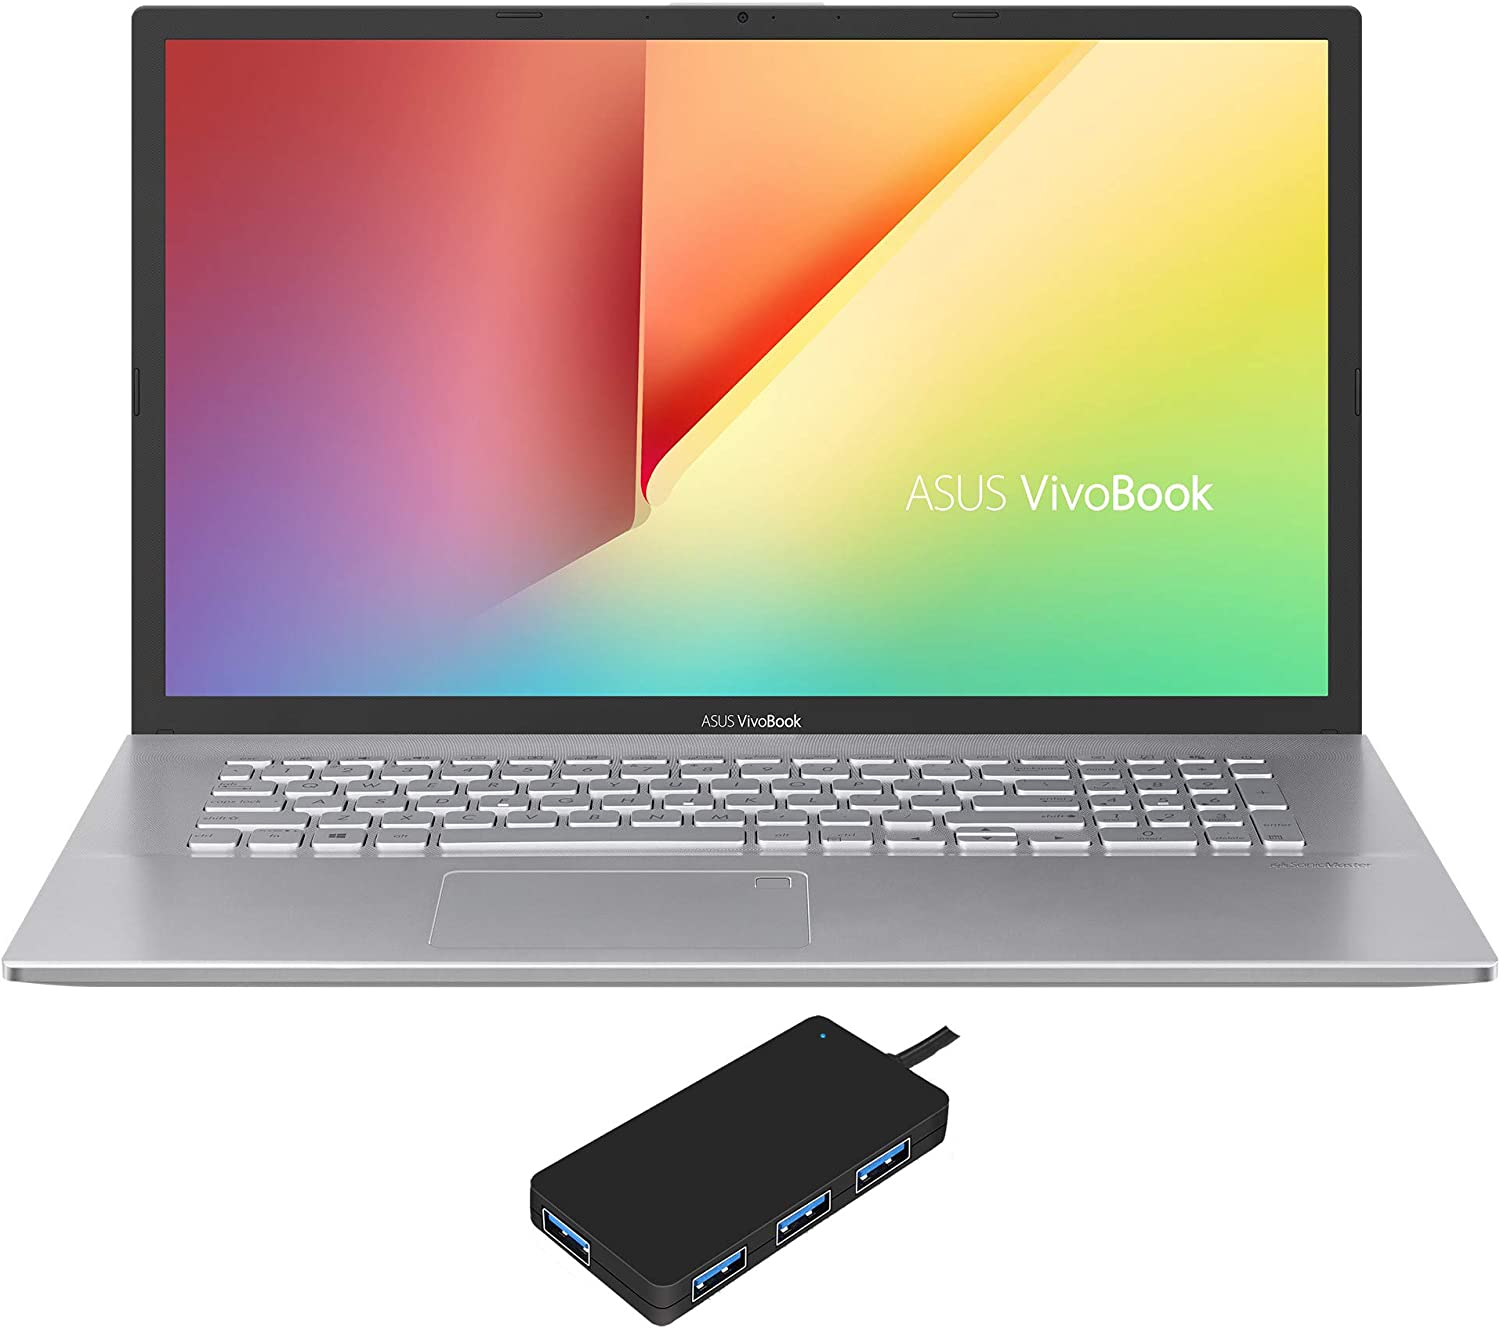 ASUS VivoBook 17 S712FA-DS76 Home and Business Laptop (Intel i7-10510U 4-Core, 24GB RAM, 128GB PCIe SSD + 1TB HDD, Intel UHD Graphics, 17.3